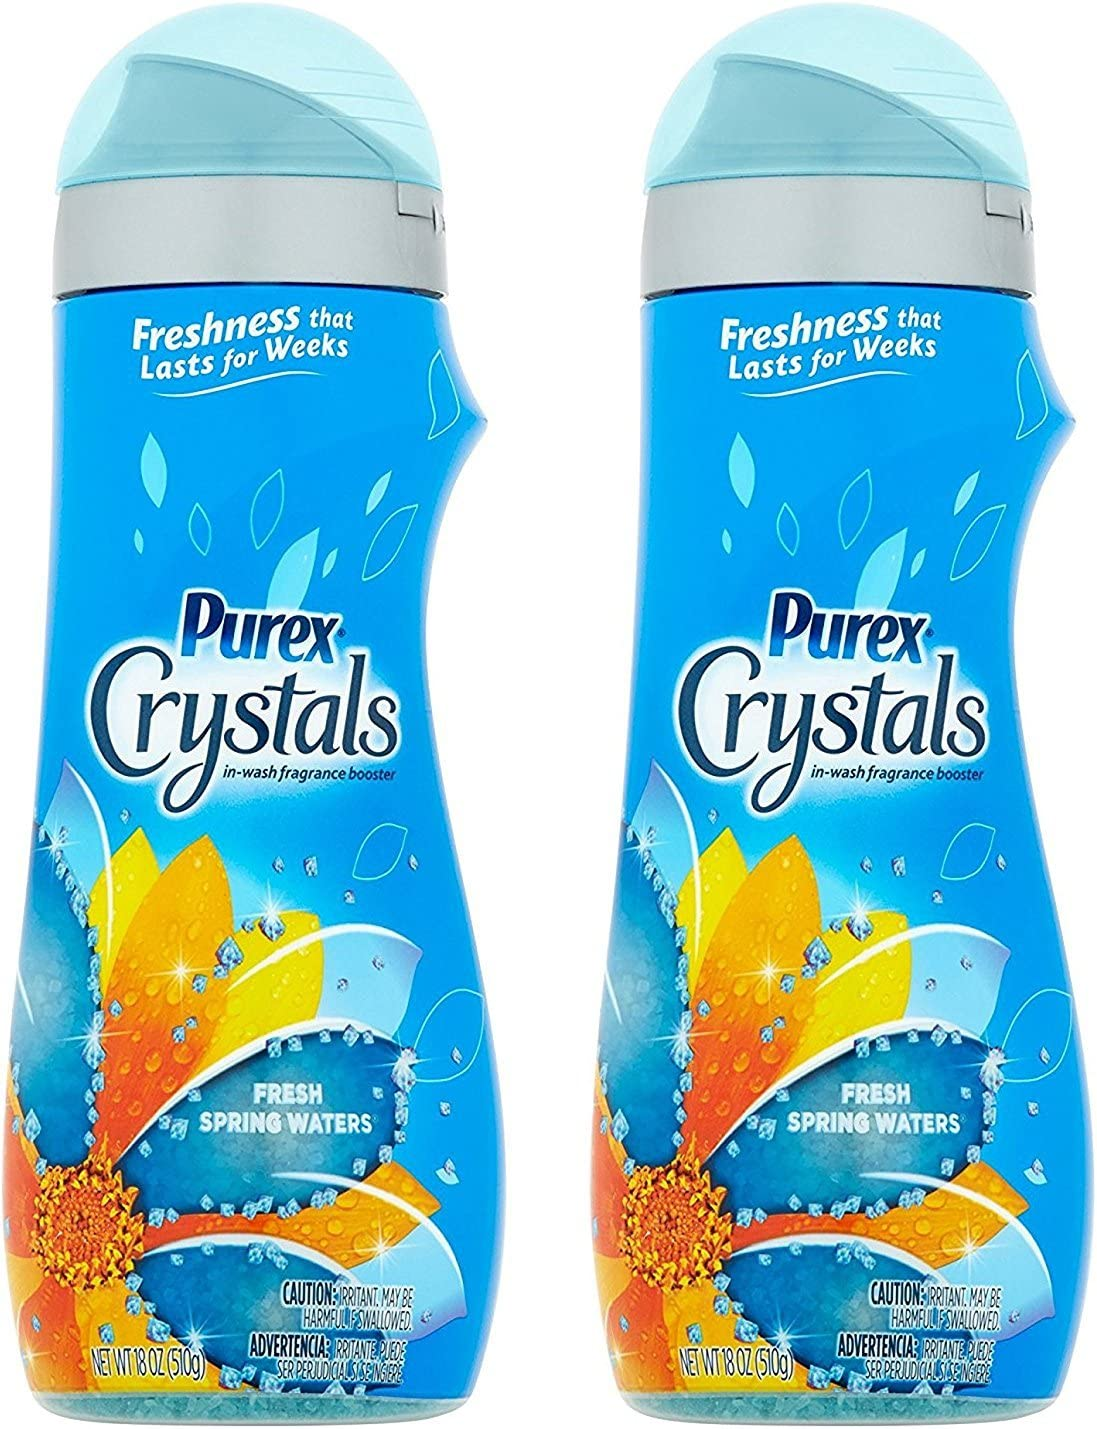 Purex Crystals Laundry Enhancer - Fresh Spring Waters - Long-Lasting Freshness - Net Wt. 18 OZ (510 G) Each - Pack of 2